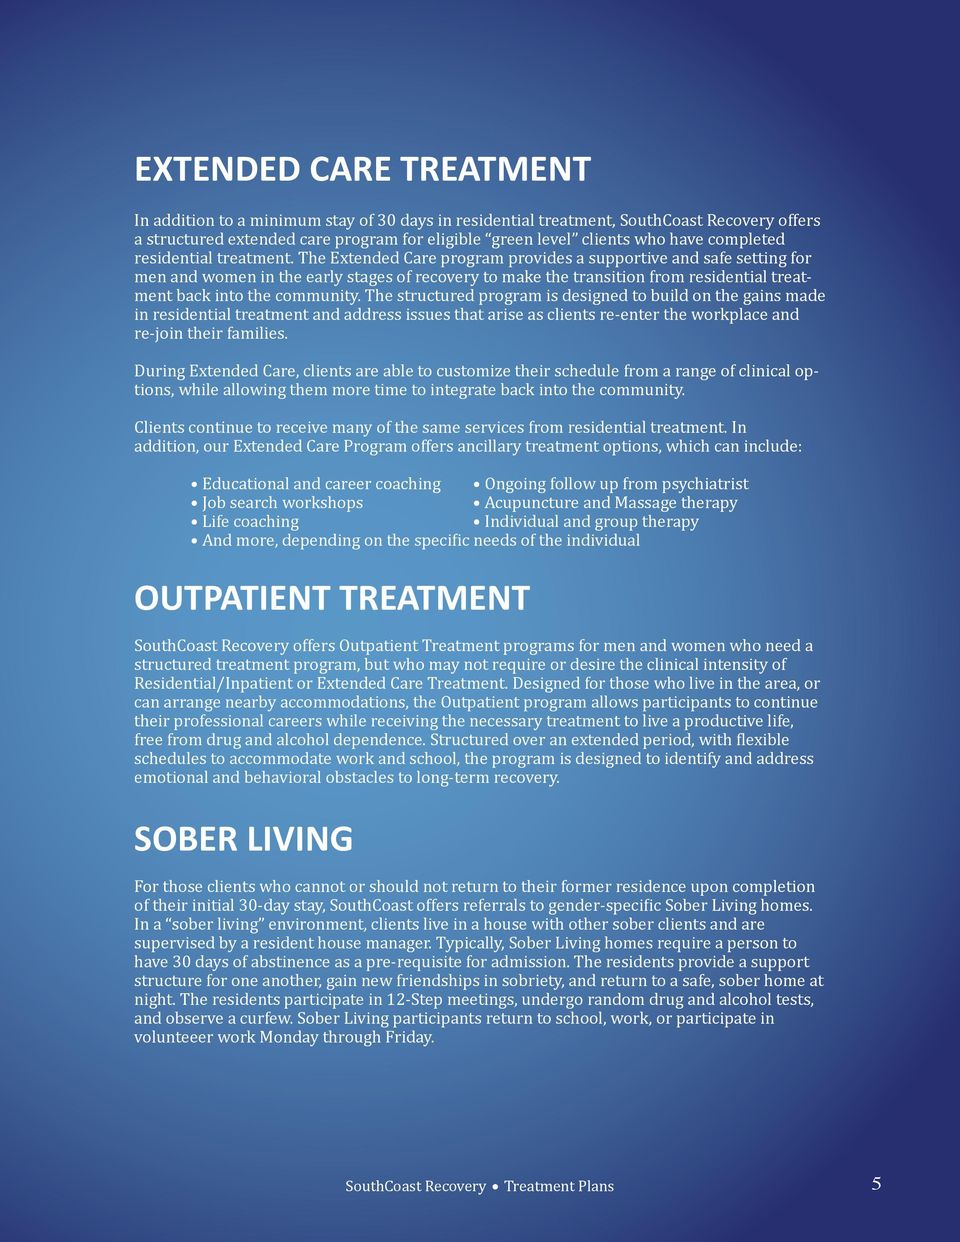 The Extended Care program provides a supportive and safe setting for men and women in the early stages of recovery to make the transition from residential treatment back into the community.